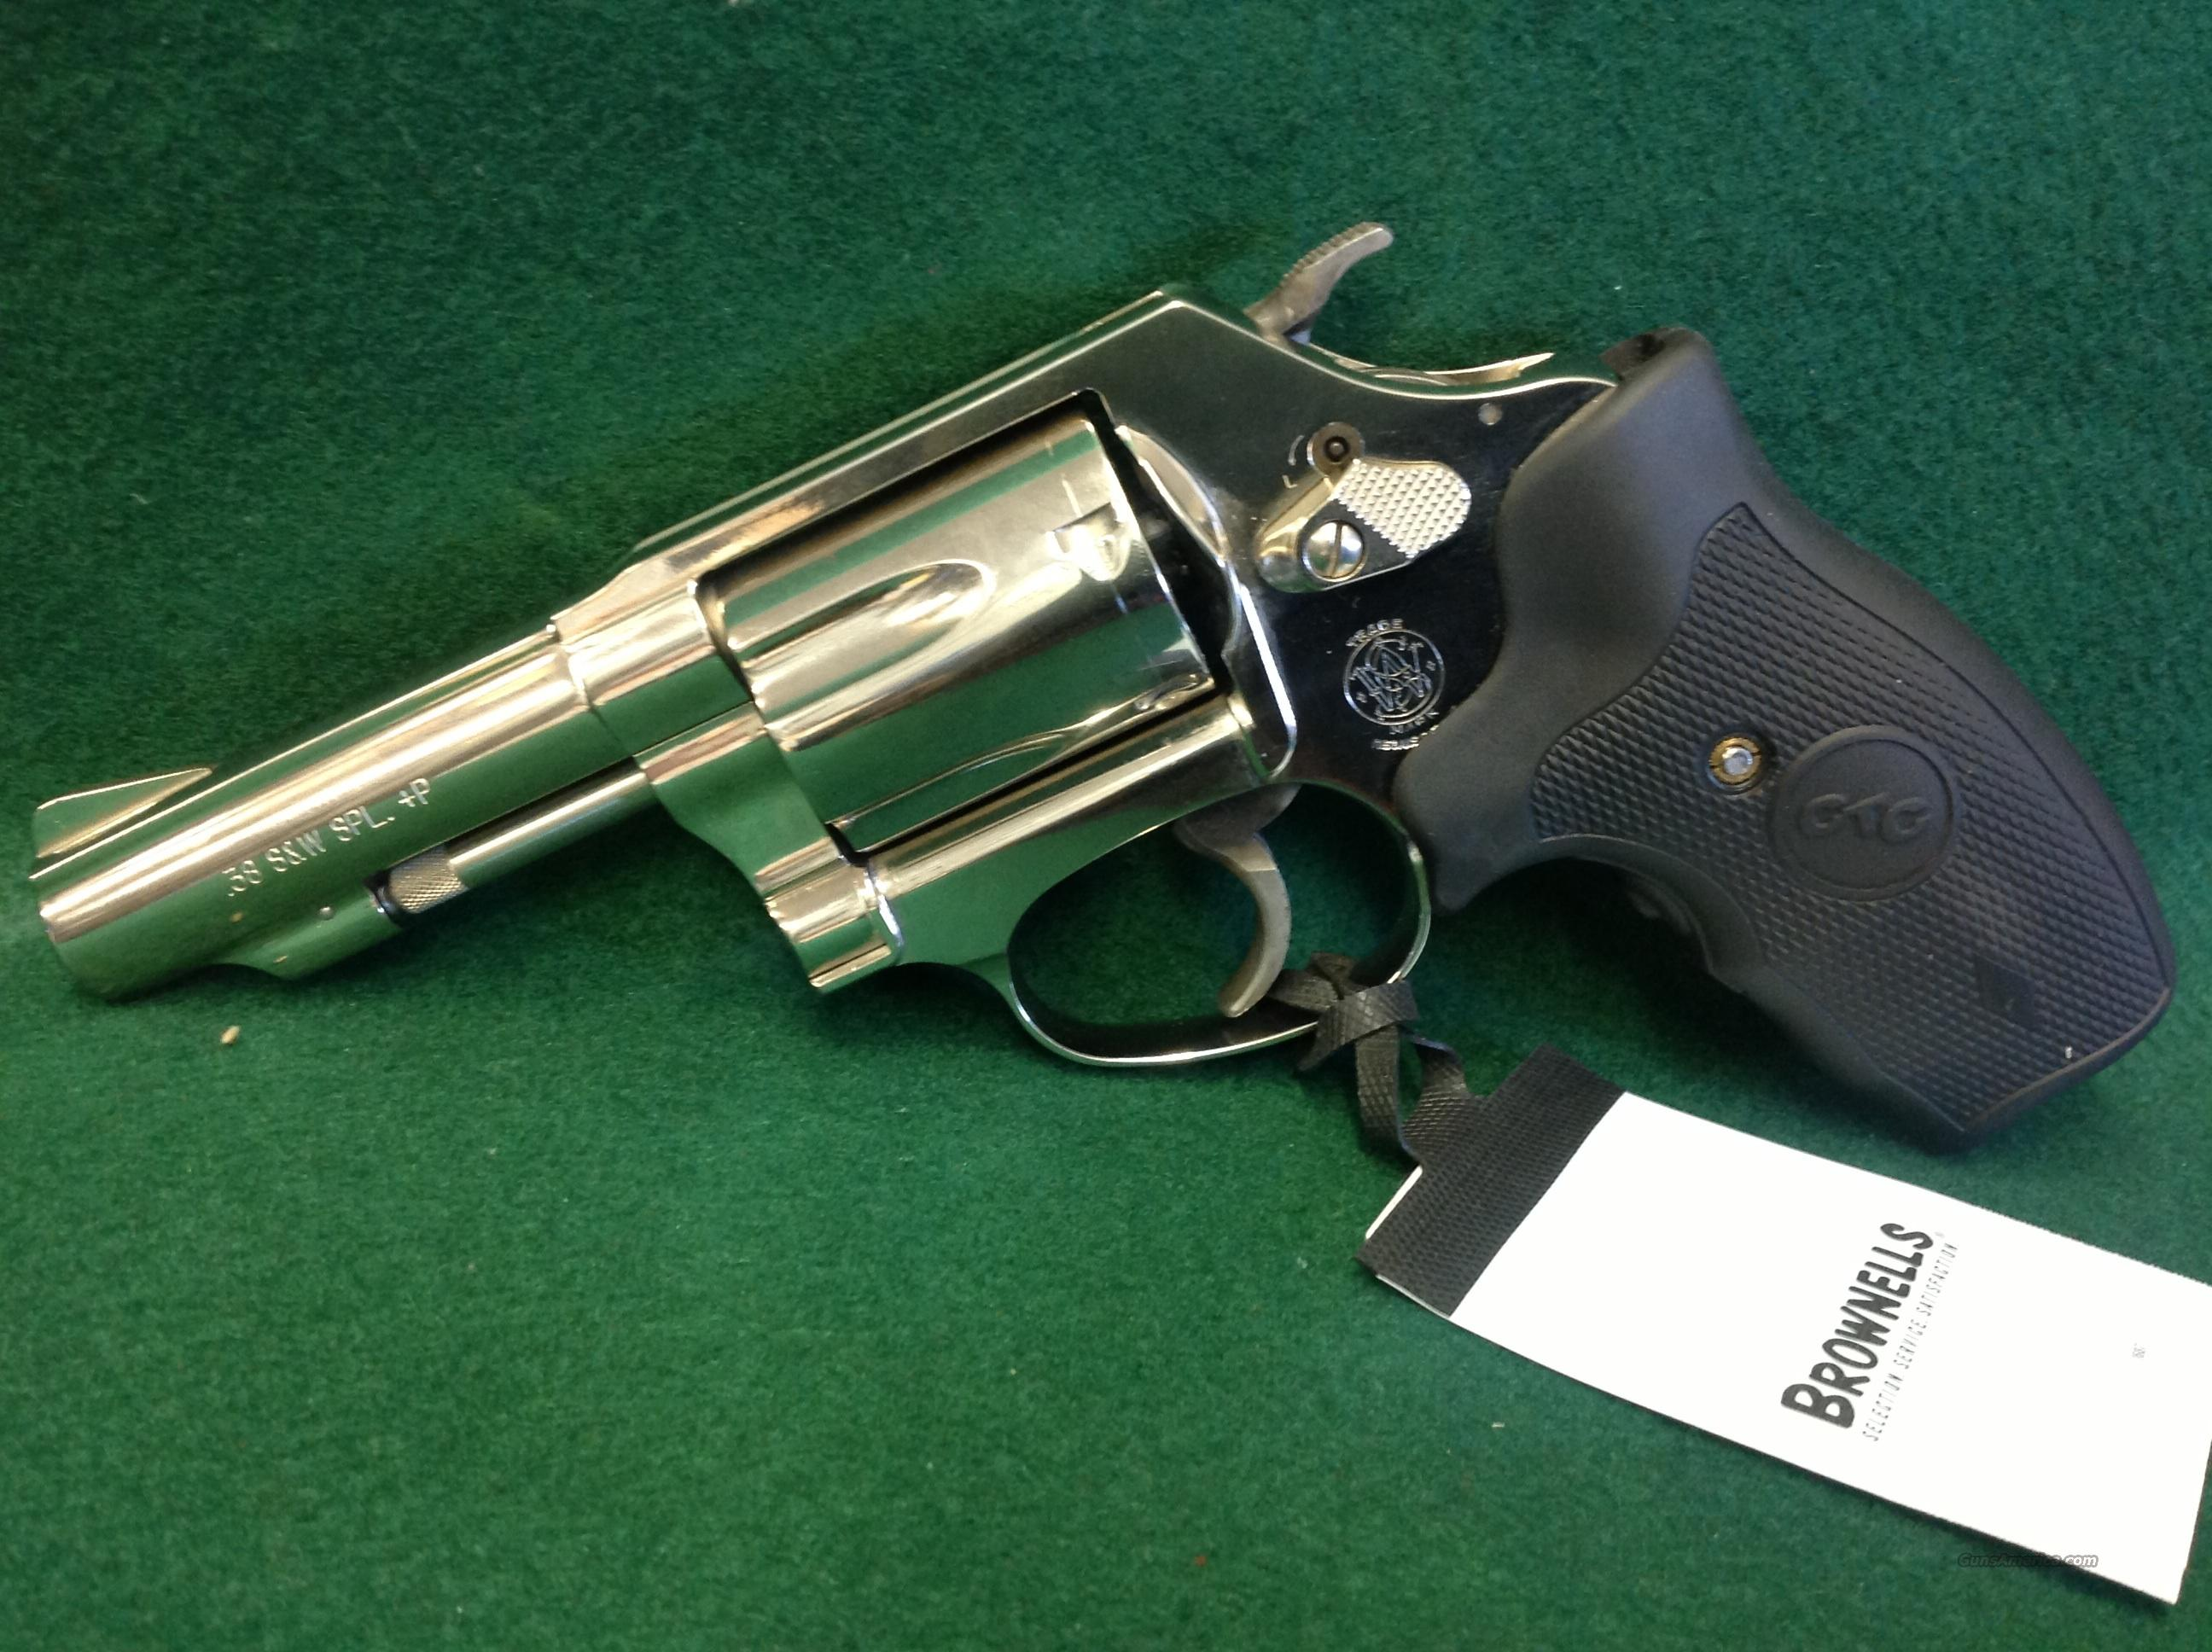 Smith & Wesson Model 36 Crimson Trace  Guns > Pistols > Smith & Wesson Revolvers > Full Frame Revolver